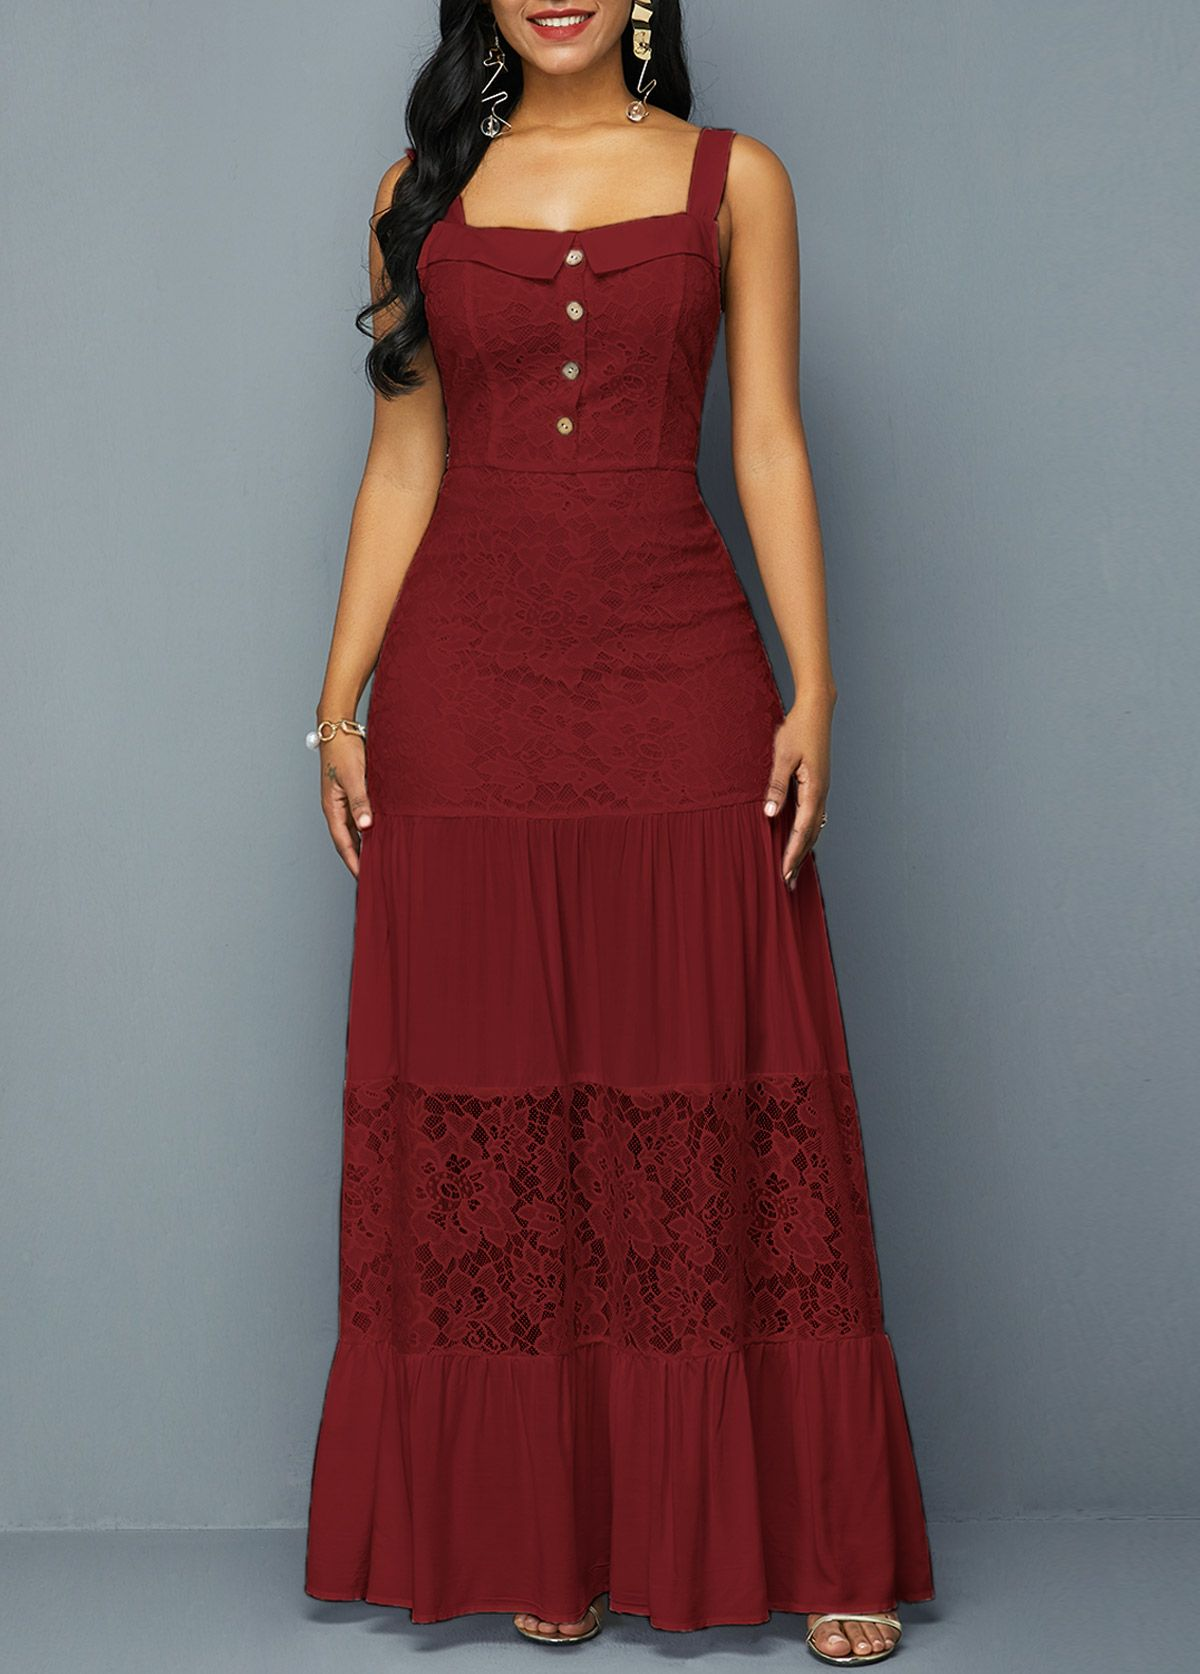 Button Detail Open Back Wine Red Lace Dress Rosewe Com Usd 34 03 Red Lace Dress Lace Dress Lace Blue Dress